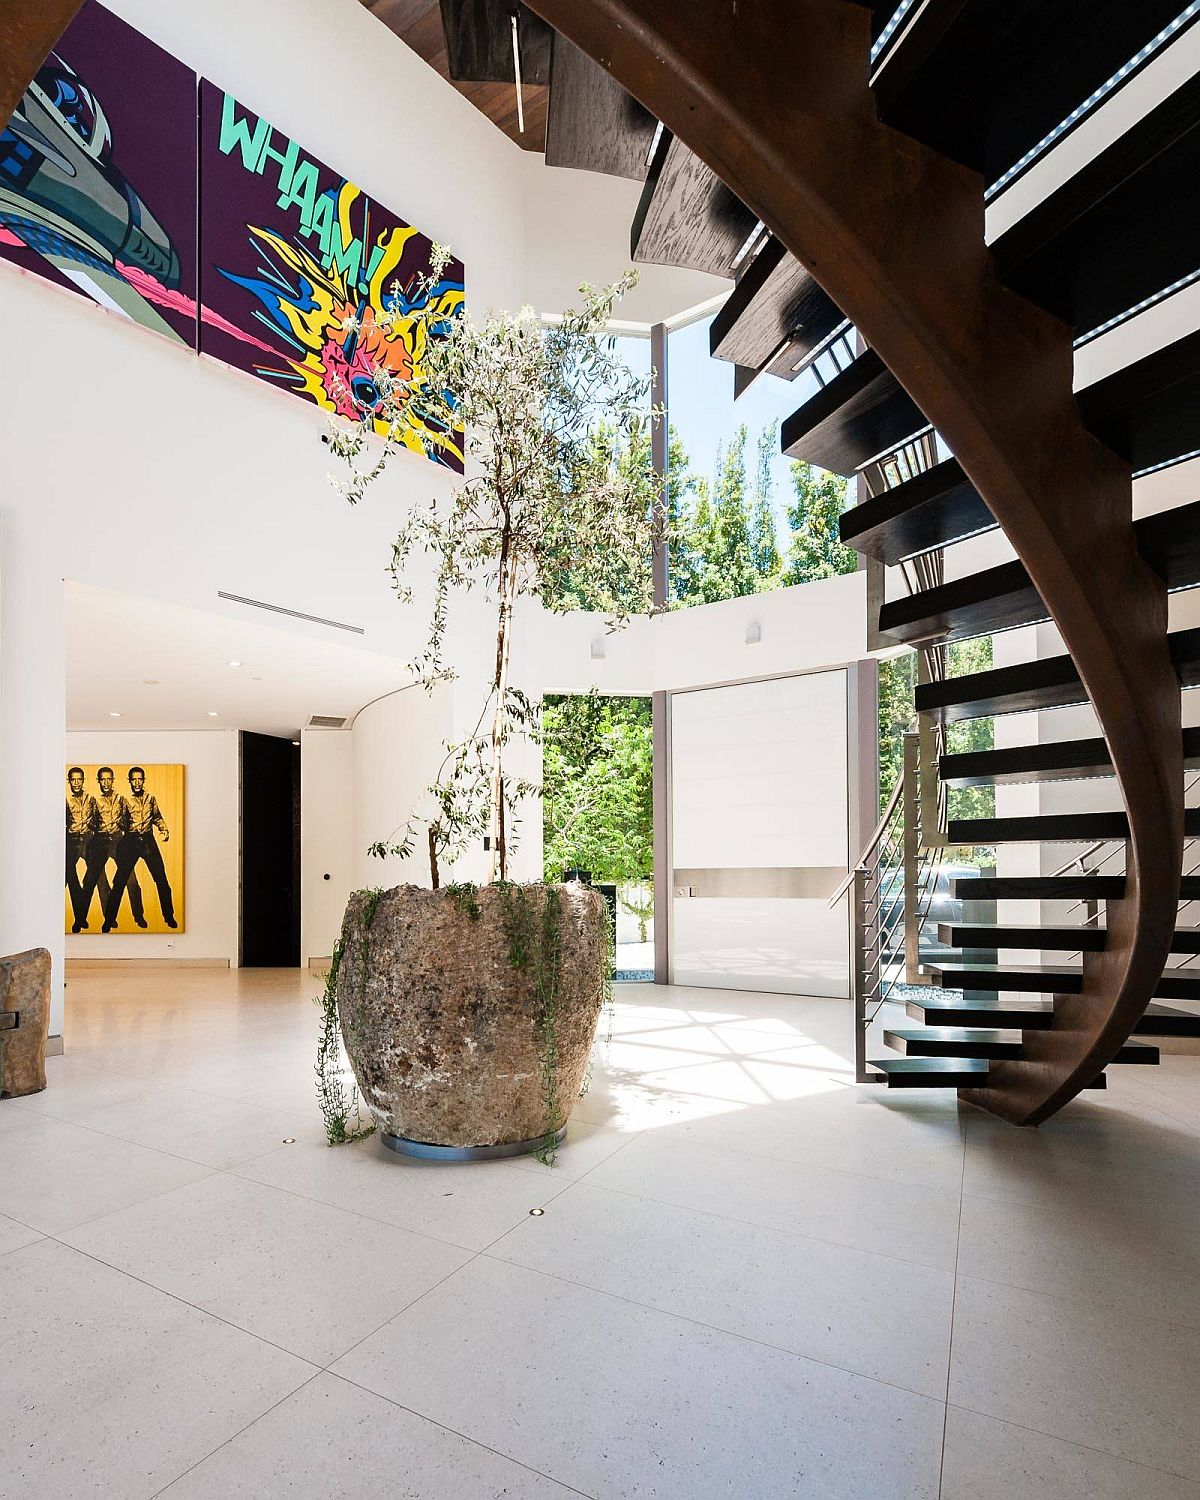 Fabulous indoor plant along with spiral staircase for the posh modern entry